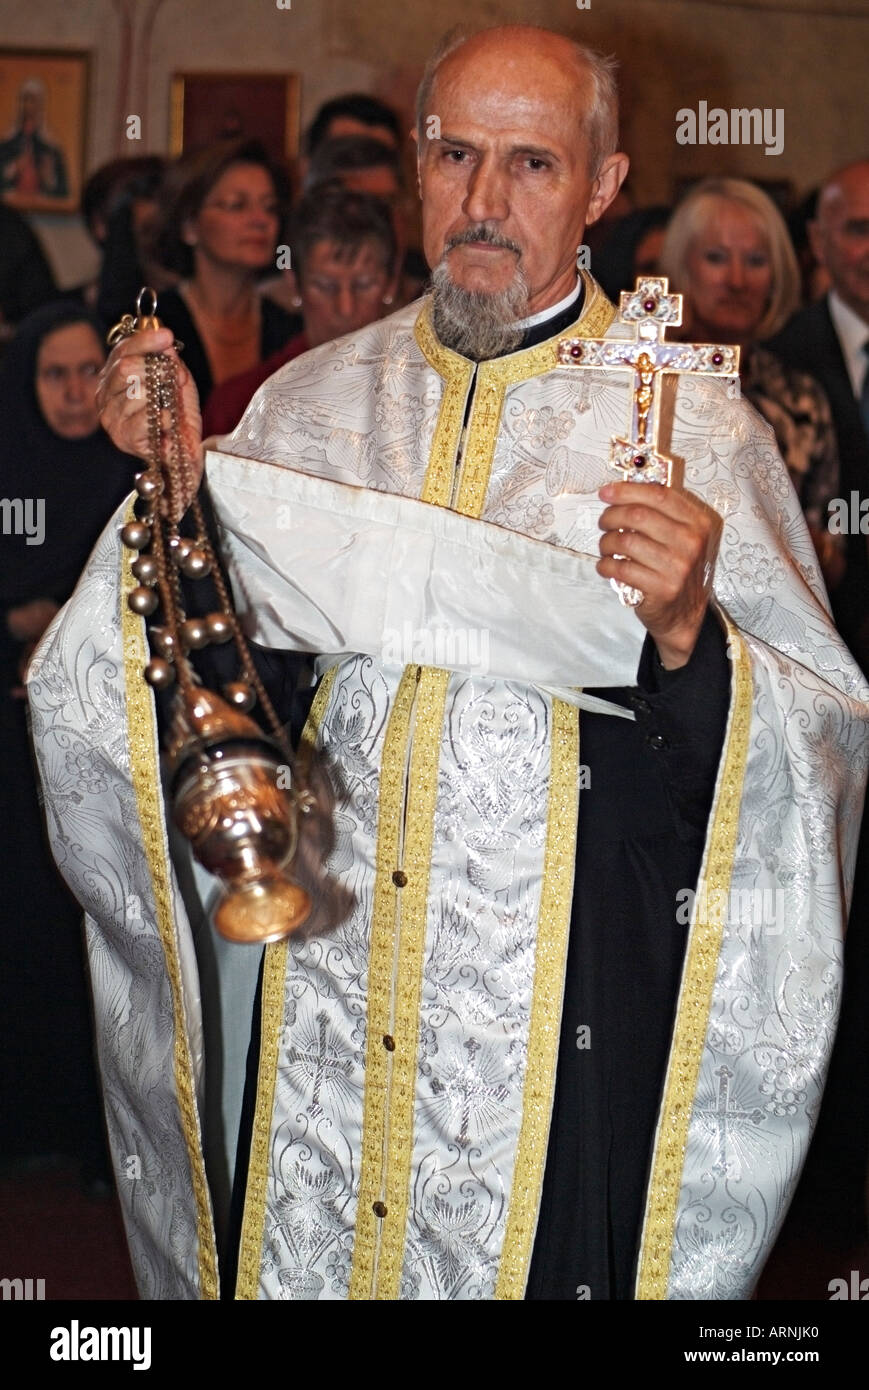 Eastern Orthodox Priest Swinging A Thurible With Burning Incense Inside To Cense The Congregation During Wedding Ceremony